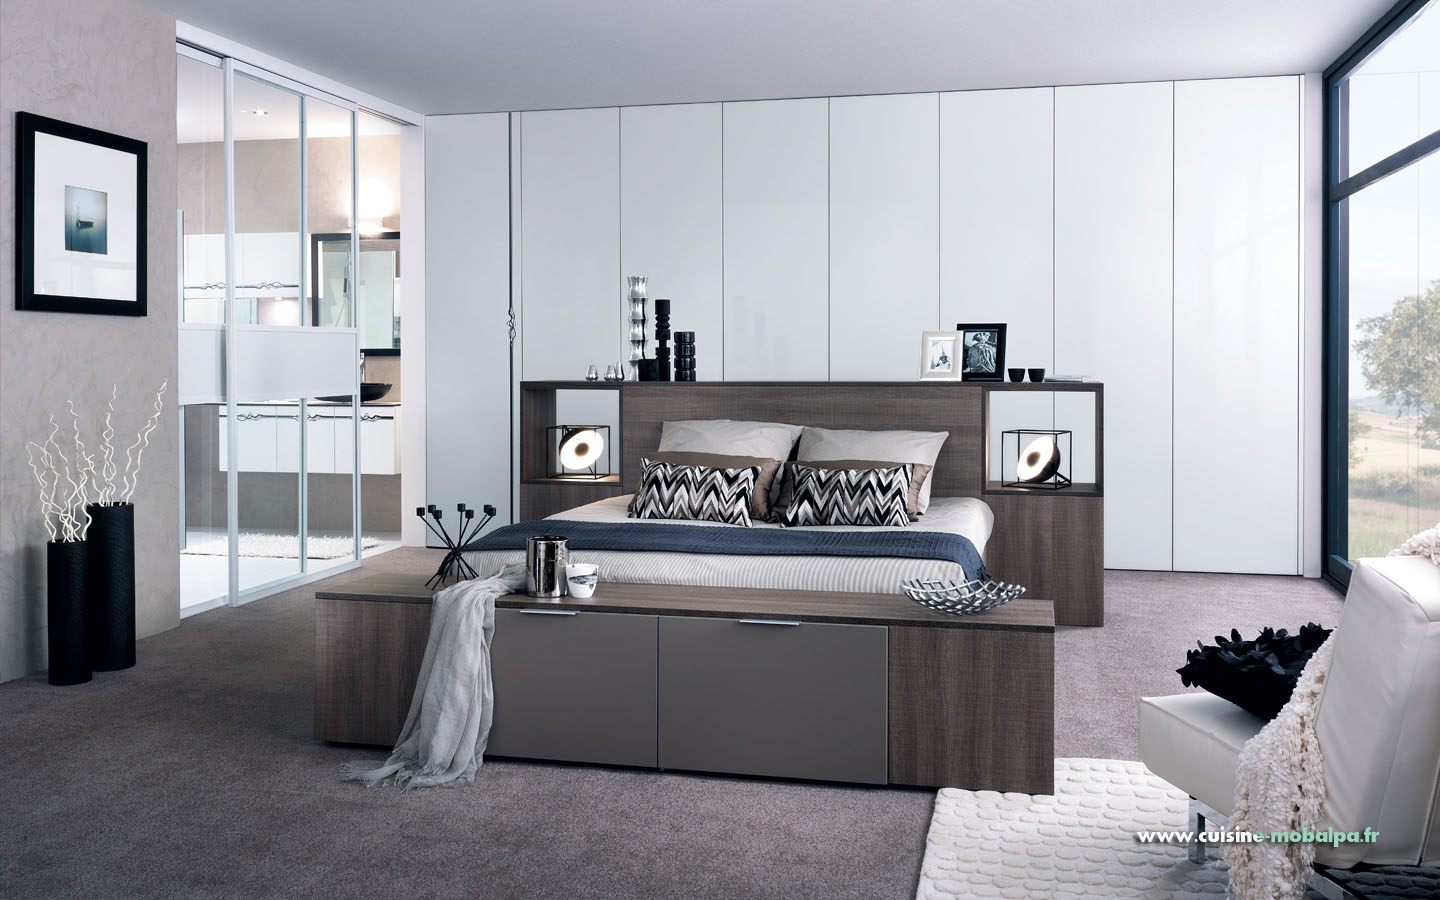 chambre lin aire cuisiniste salle de bains rangement dressing. Black Bedroom Furniture Sets. Home Design Ideas